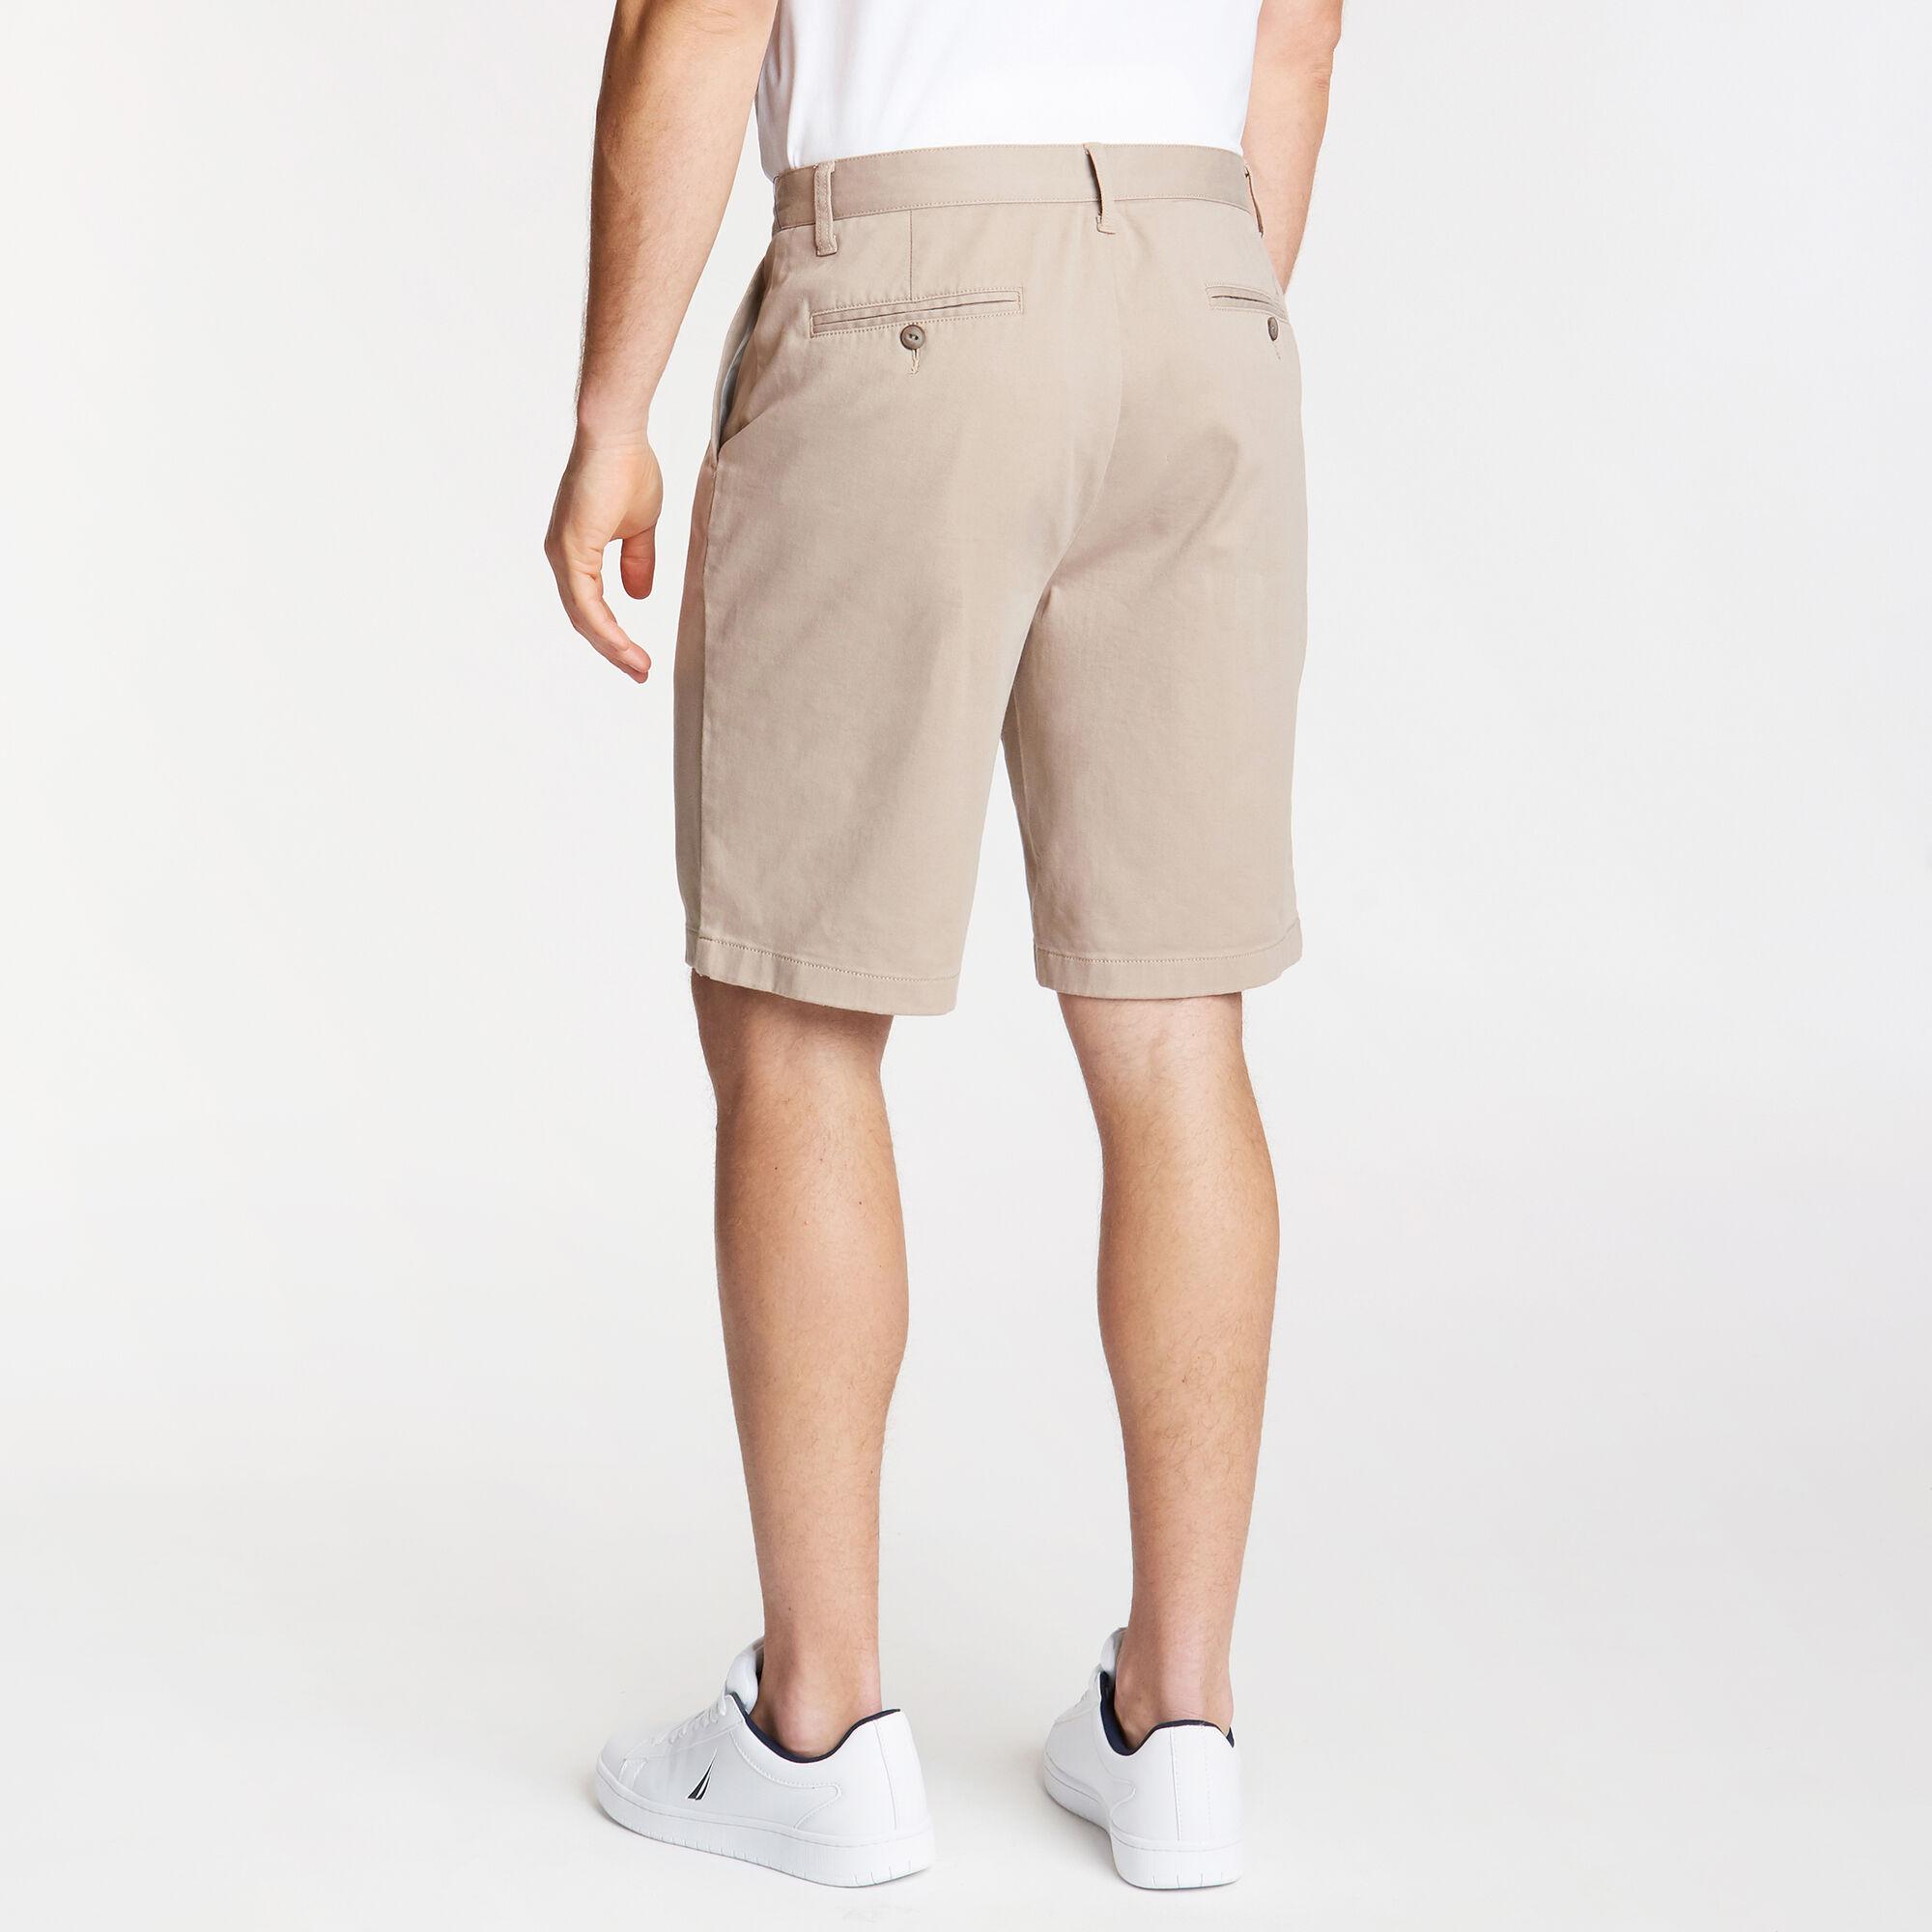 Nautica-Mens-10-034-Classic-Fit-Deck-Shorts-With-Stretch thumbnail 35